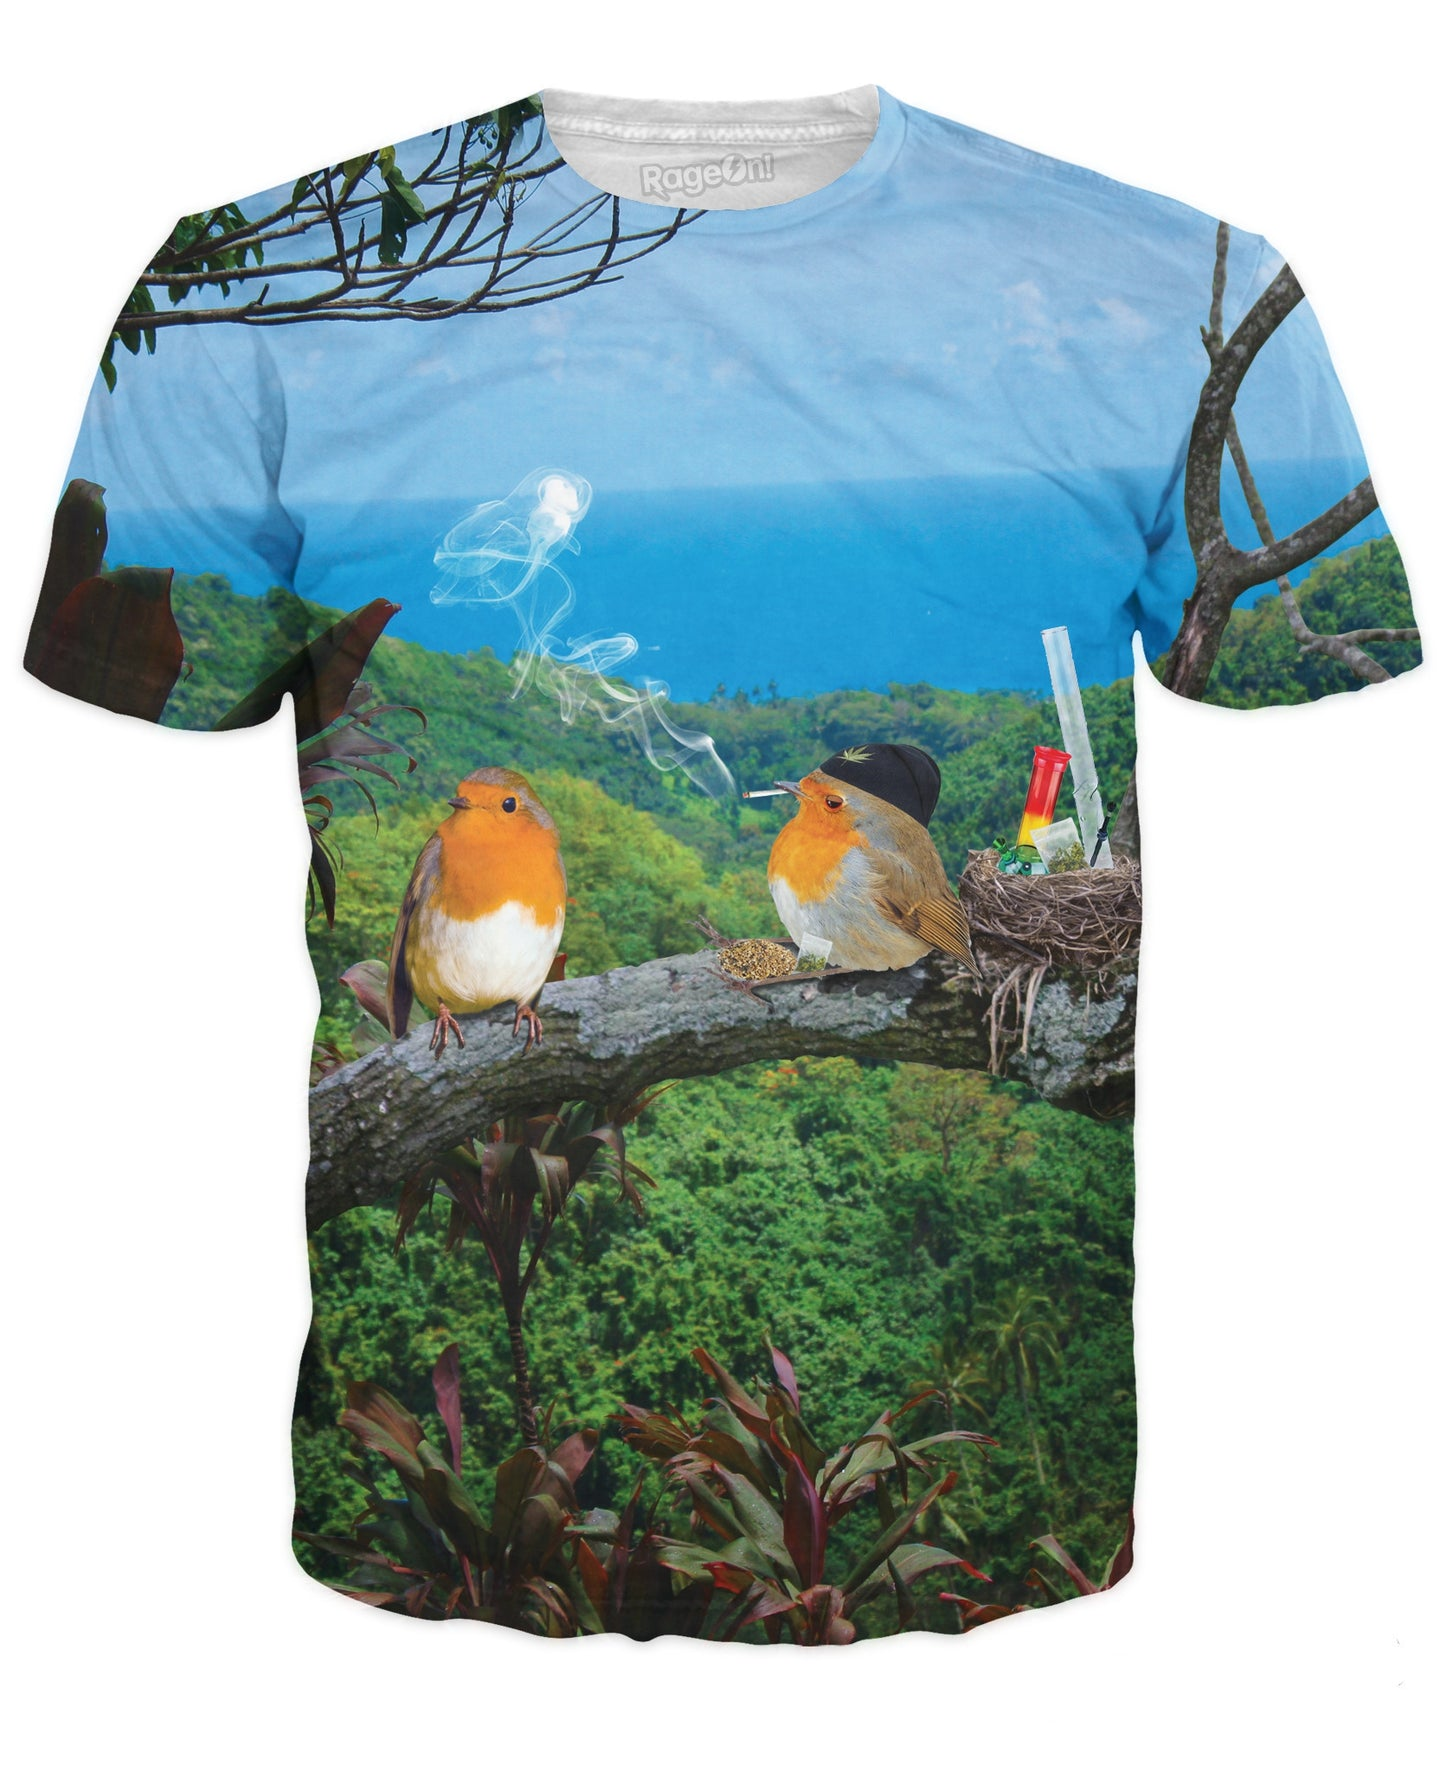 2 Birds, 1 Stoned T-Shirt - JAKKOUTTHEBXX - T-Shirts